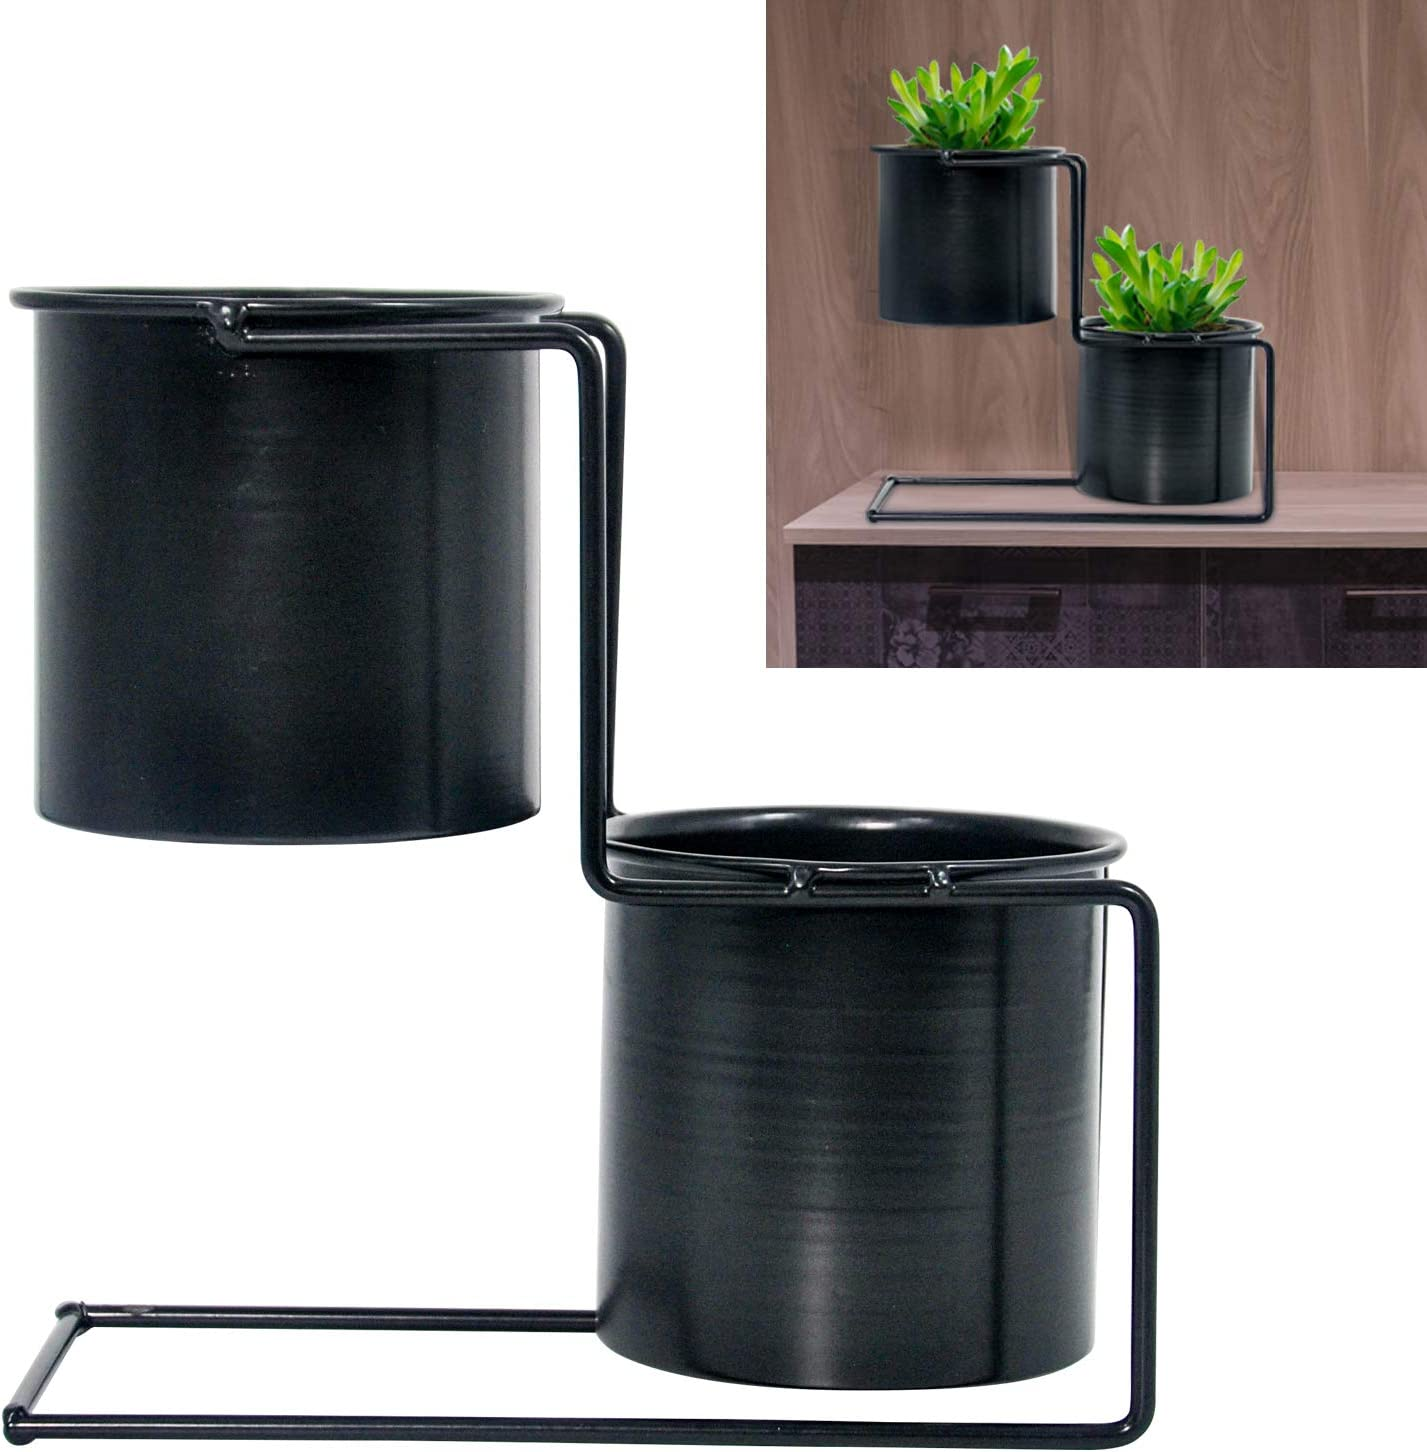 2 in 1 Metal Round Modern Flower Vase Stepped Iron Tabletop Plant Pots with Stand Indoor Outdoor Balcony, Tabletop, Bathroom, Kitchen, Bedroom, Study, Office Desktop Decoration (Black)